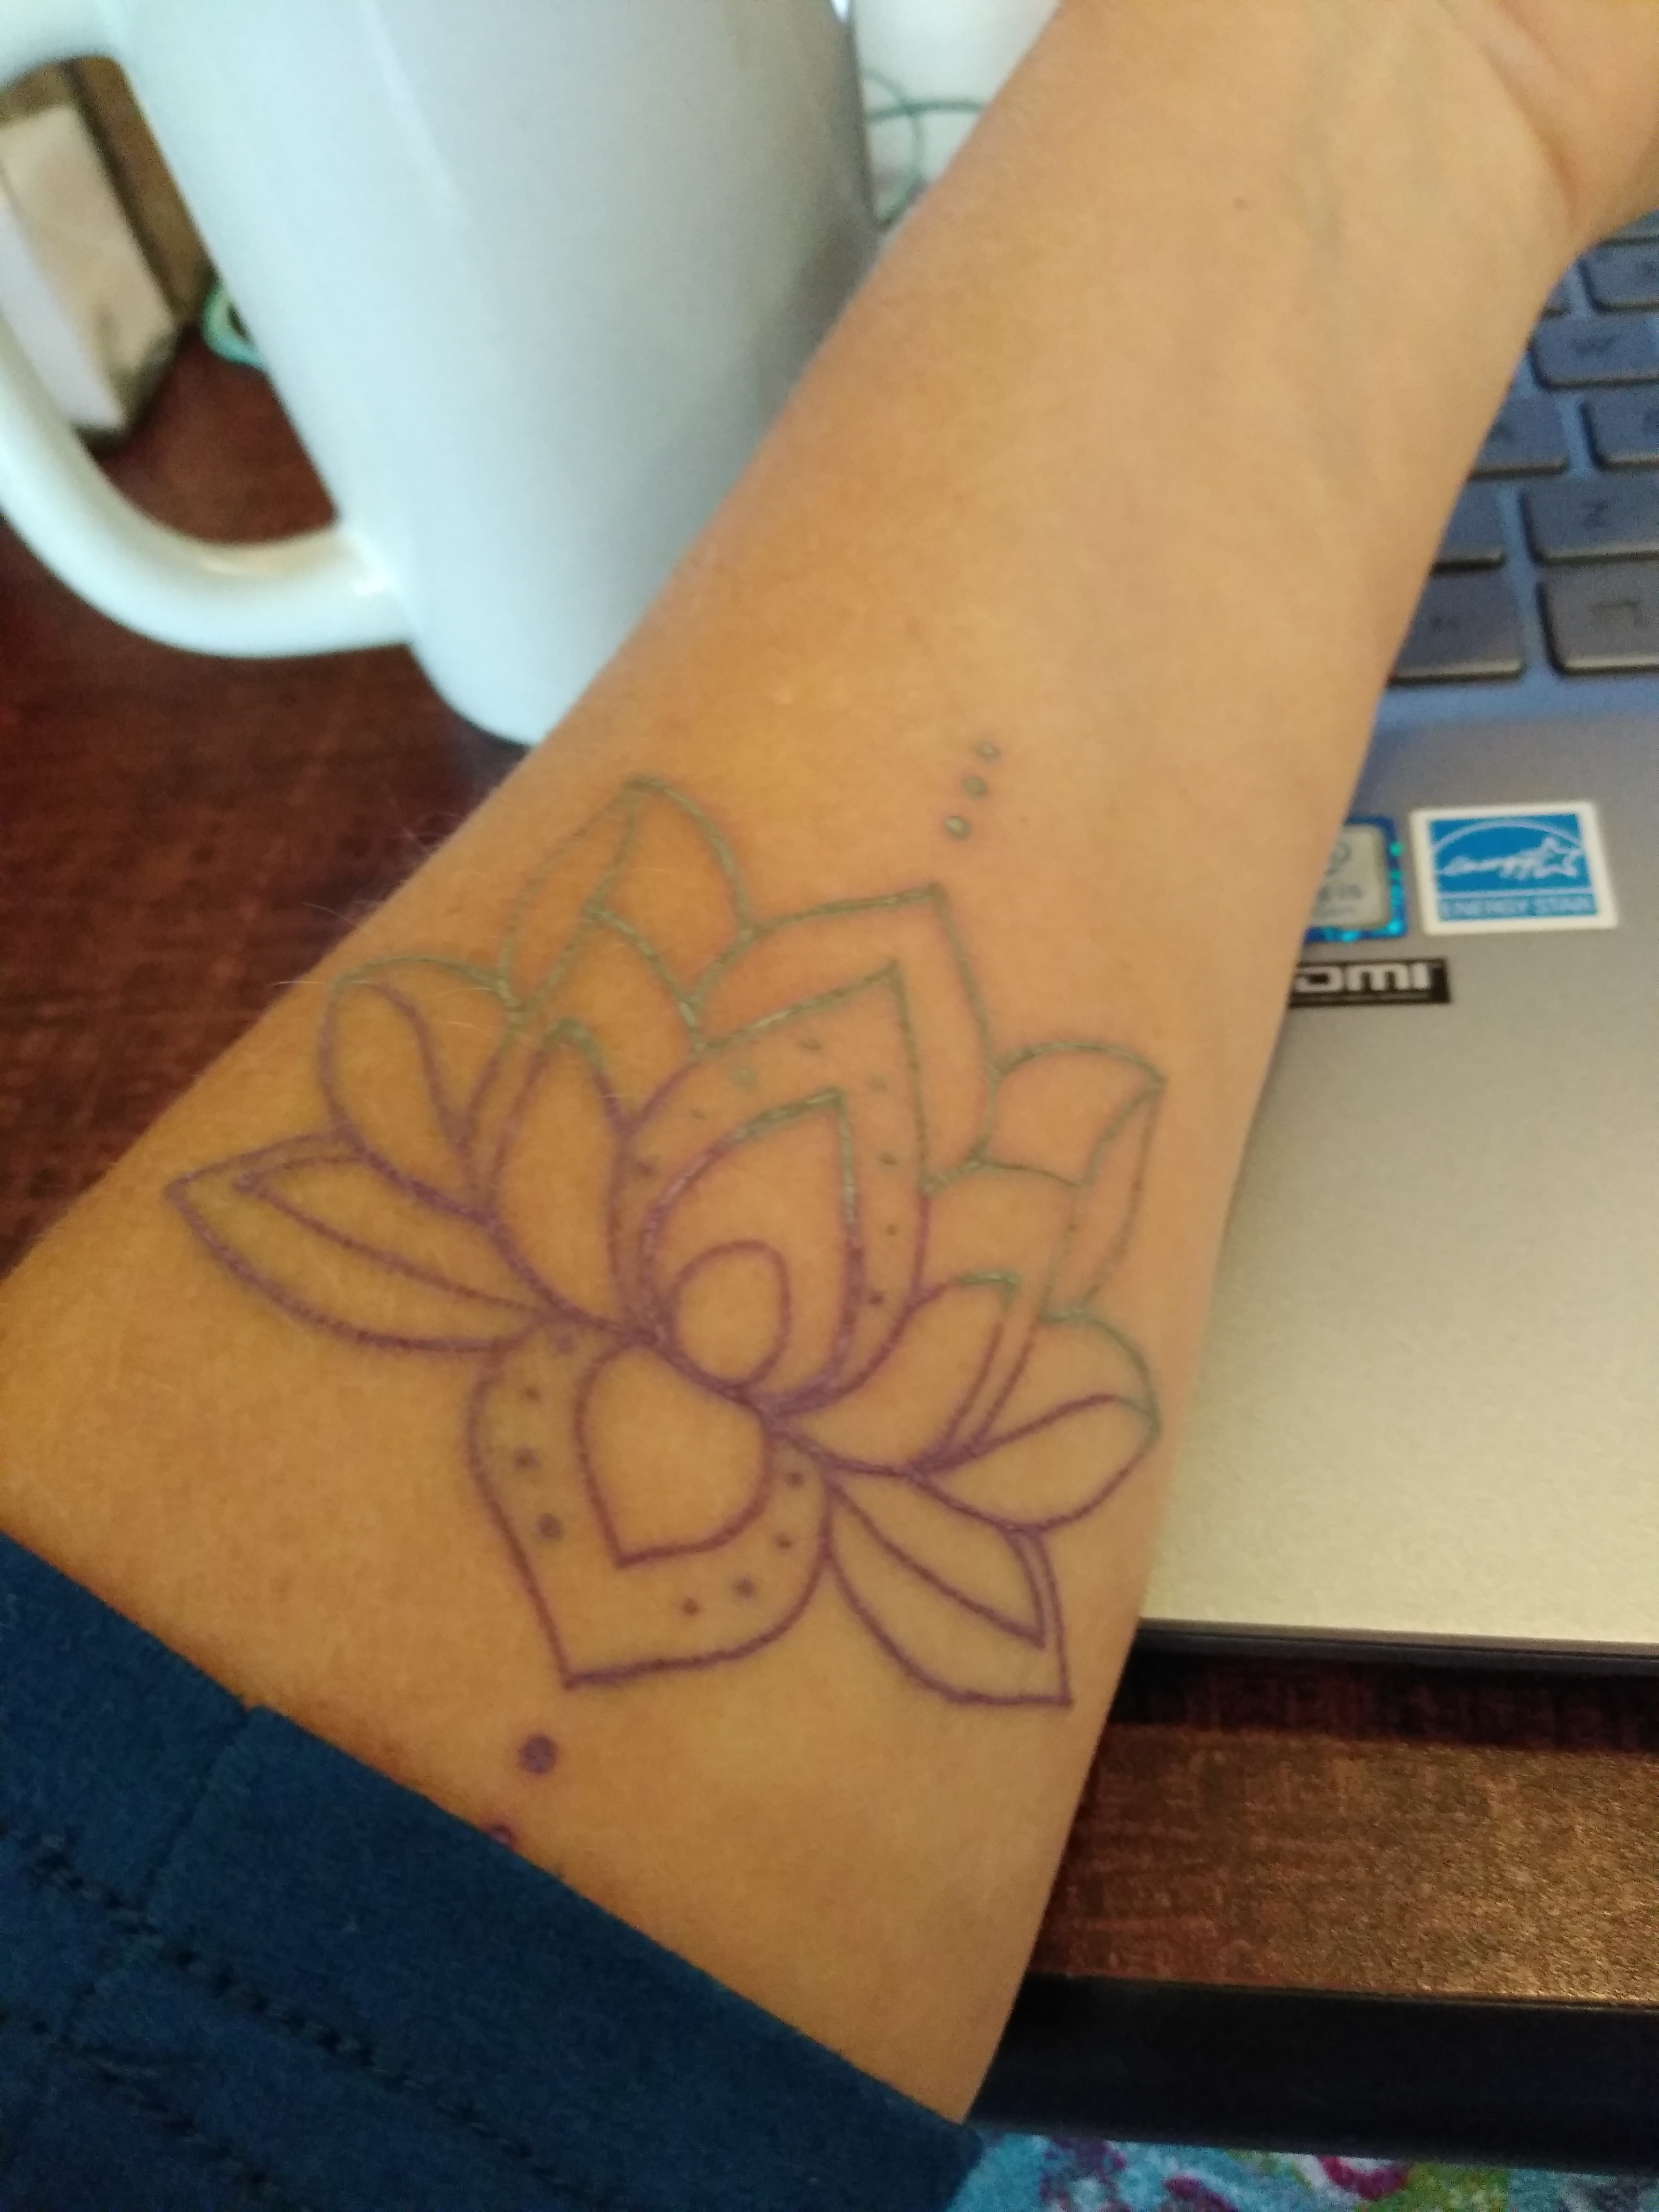 Purple and aqua tattoo of a lotus or waterlily on inner forearm.